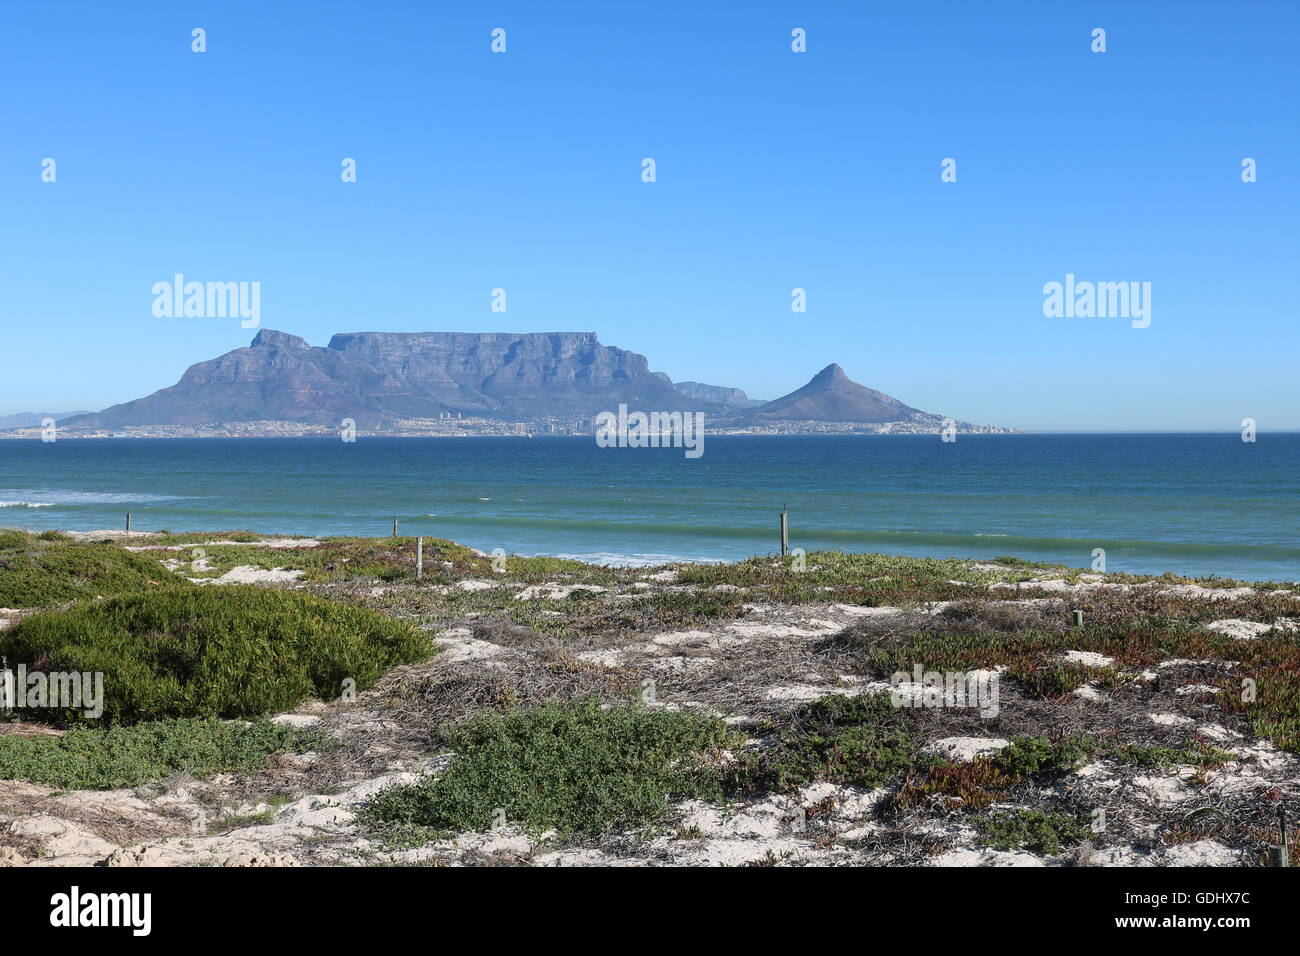 Table Mountain Cape Town South Africa Imagen De Stock